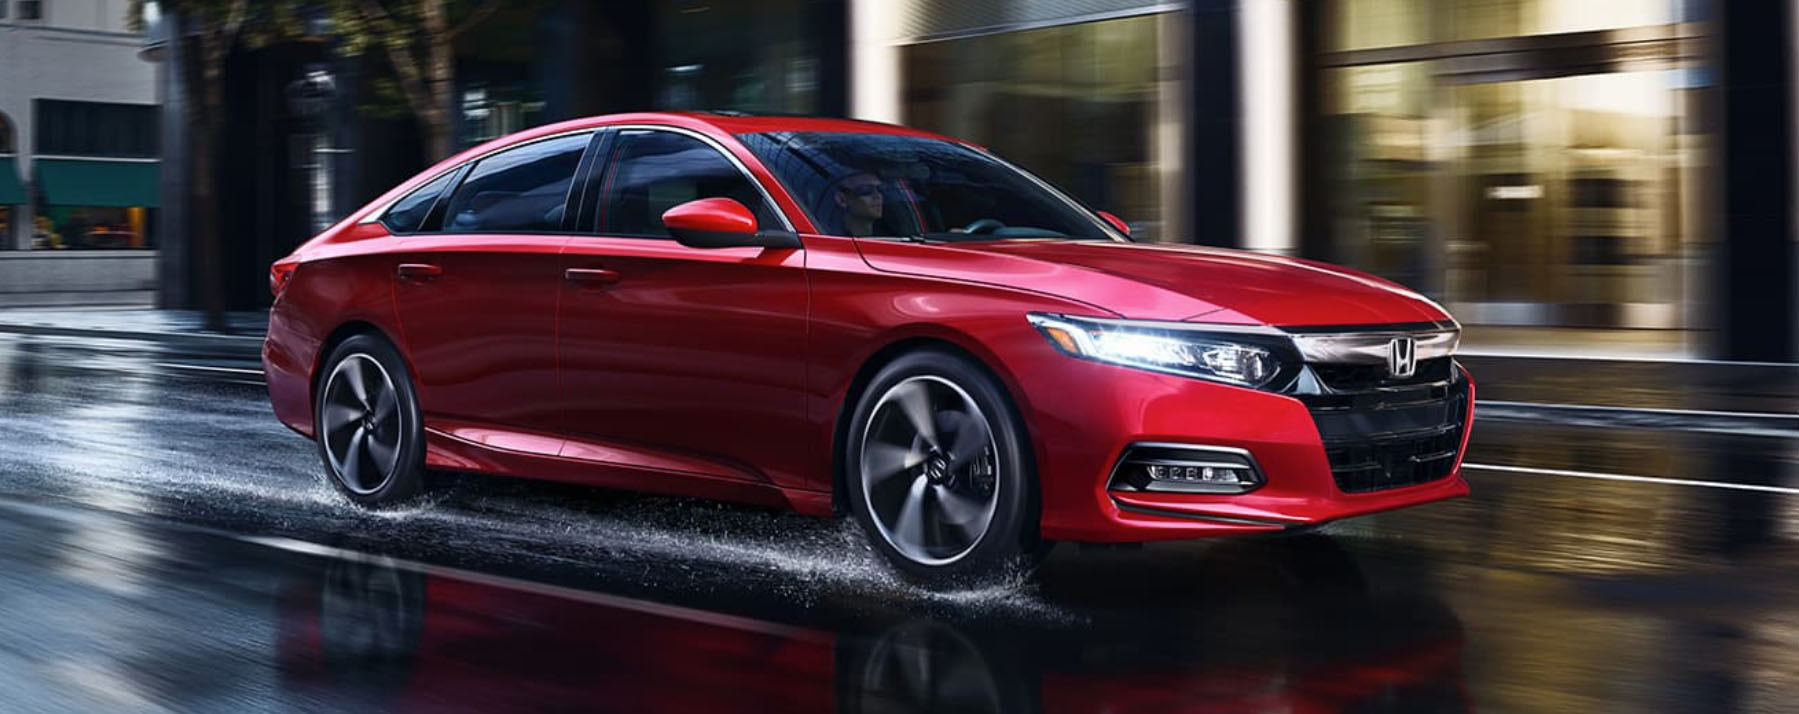 2020 Honda Accord Appearance Main Img